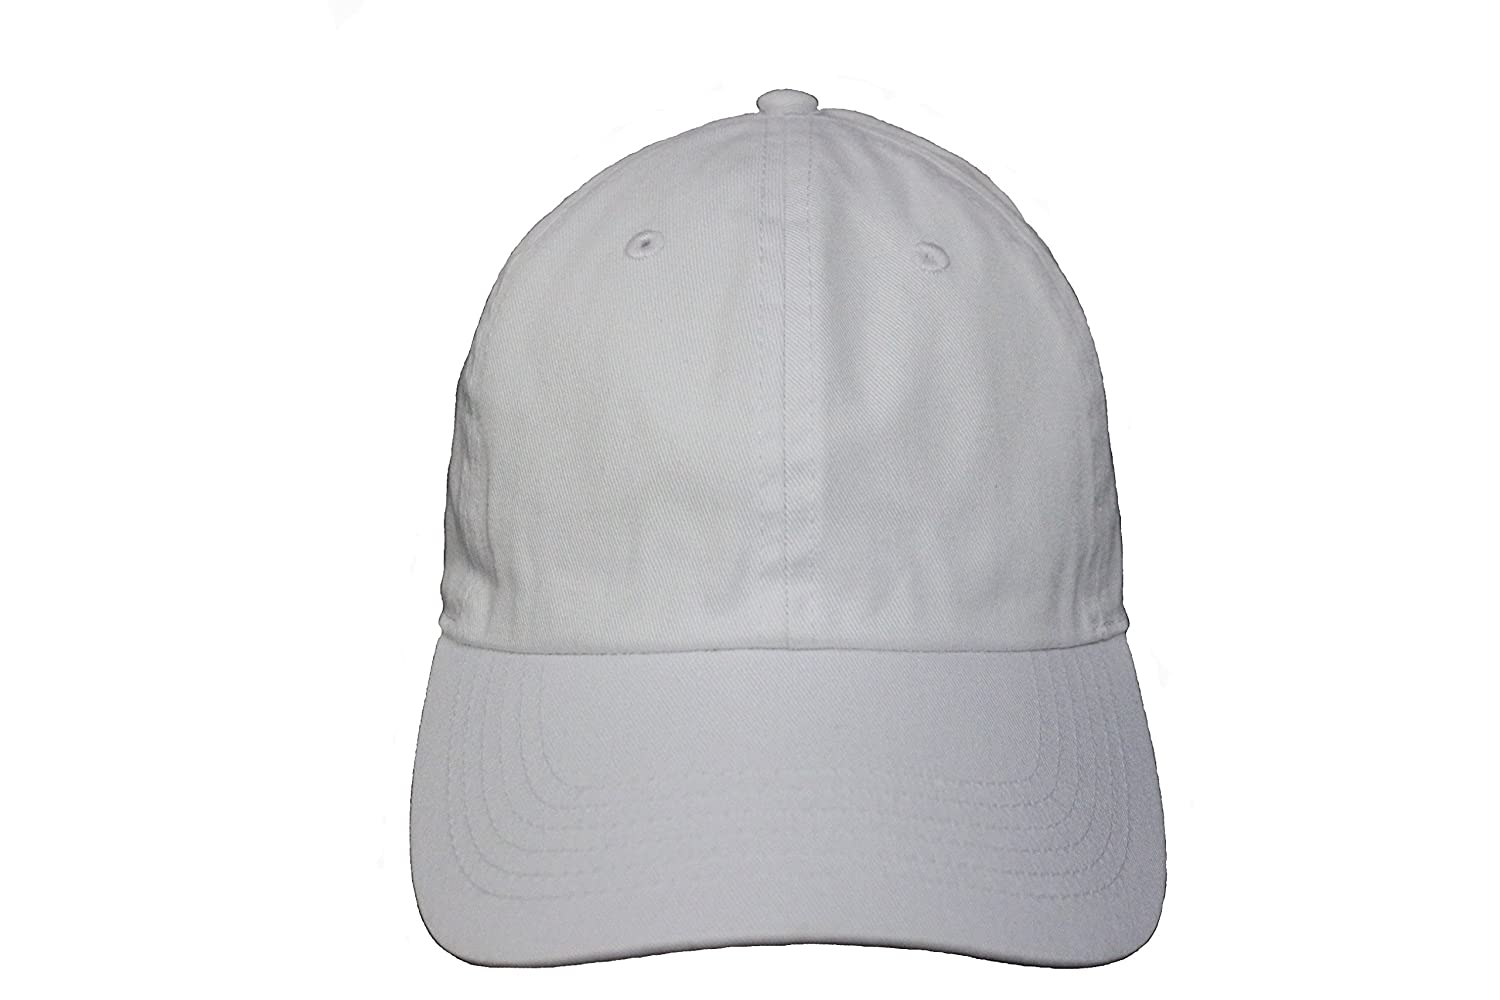 ae5e348d93b Amazon.com  WHITE Plain Hat Cap .. NEWHATTAN ..Great Quality .. New  Sports    Outdoors